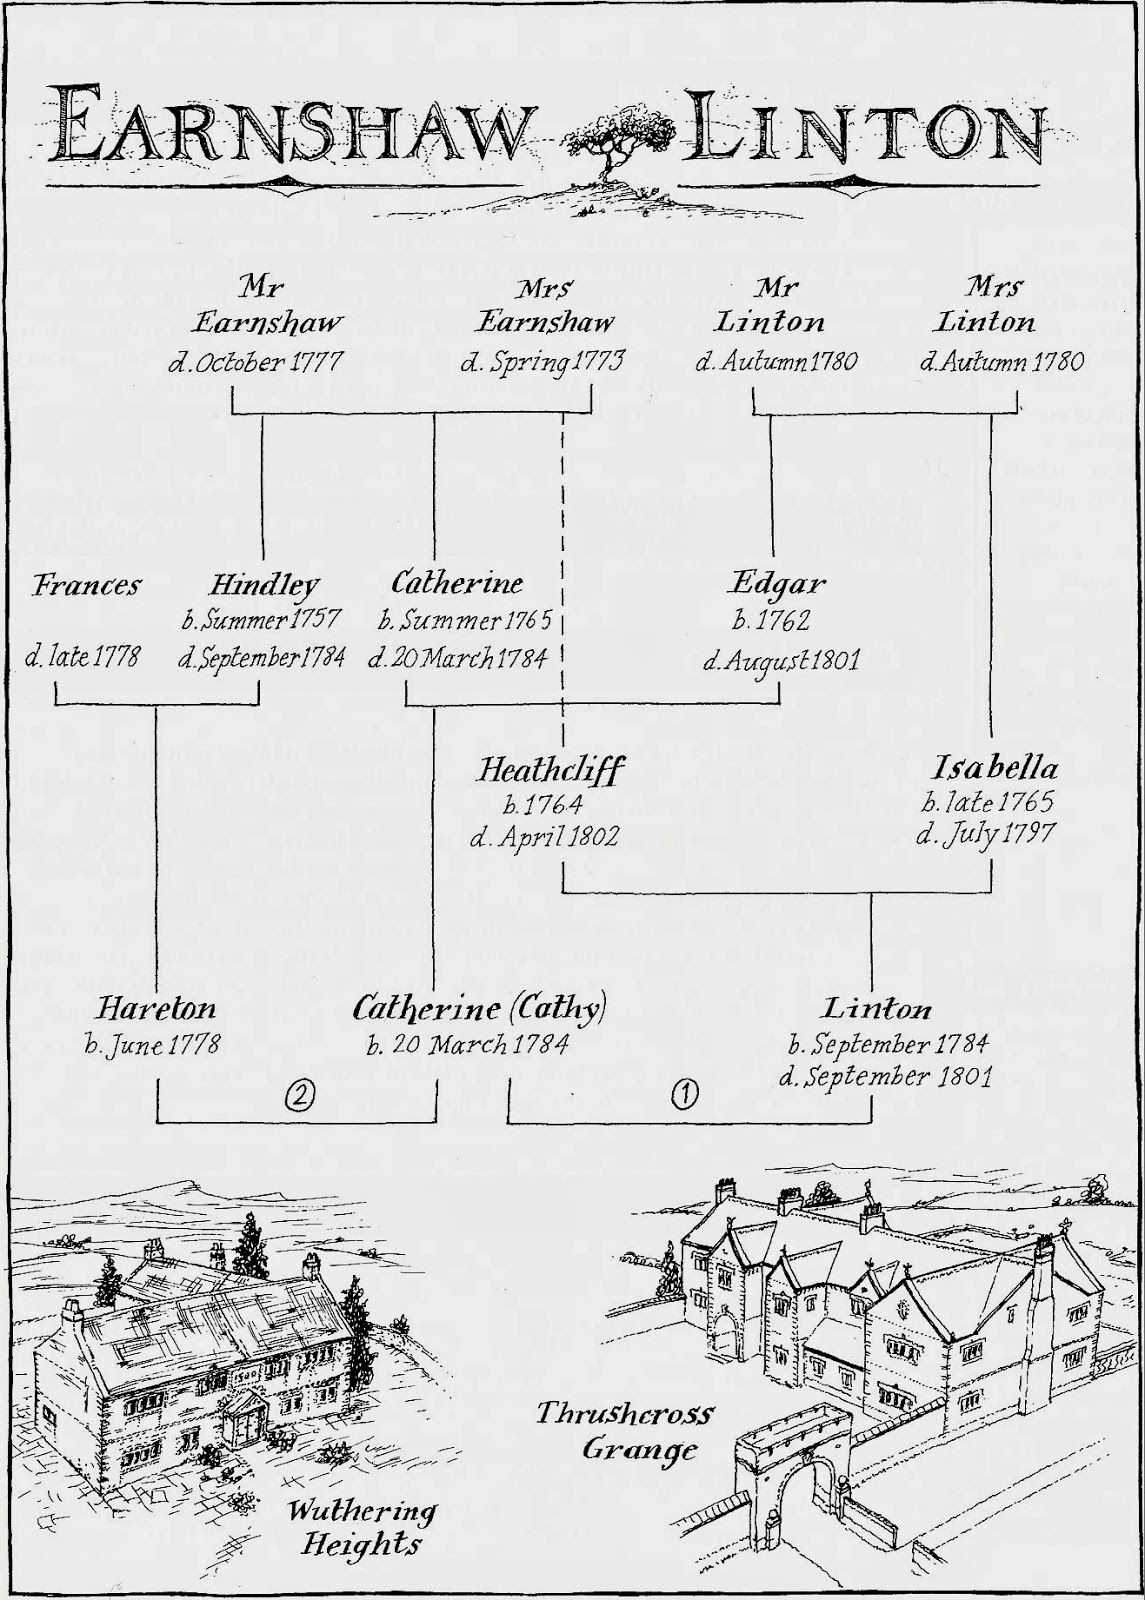 wuthering heights linton the revision ward wuthering heights  the revision ward wuthering heights family tree